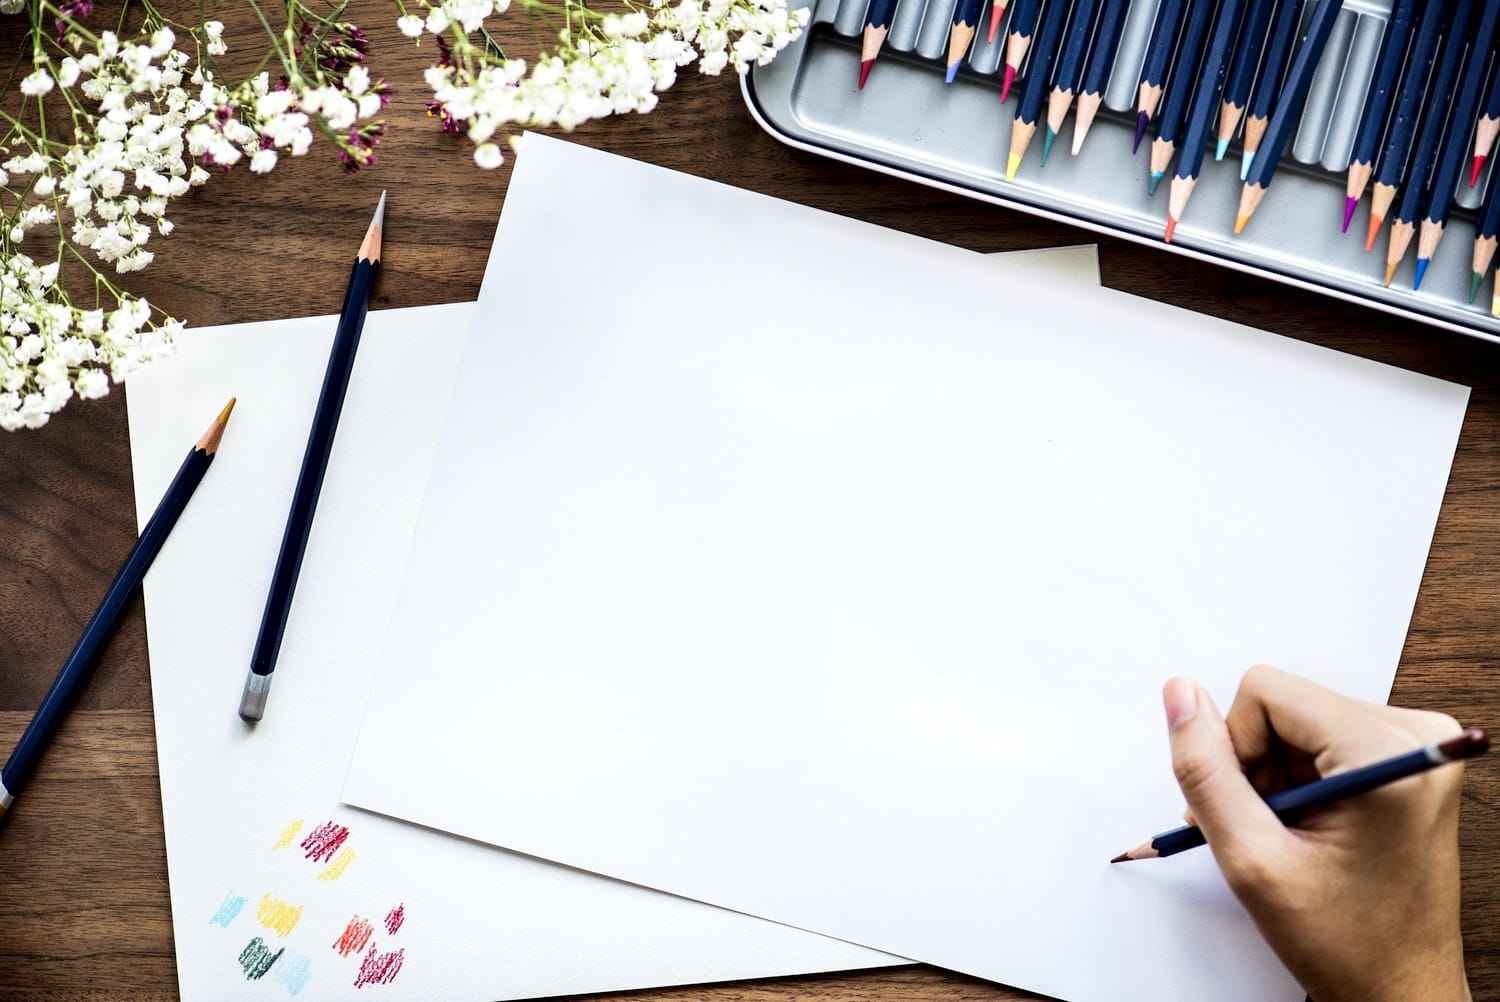 5 Best Paper for Prismacolor Pencils in 2019 Reviewed